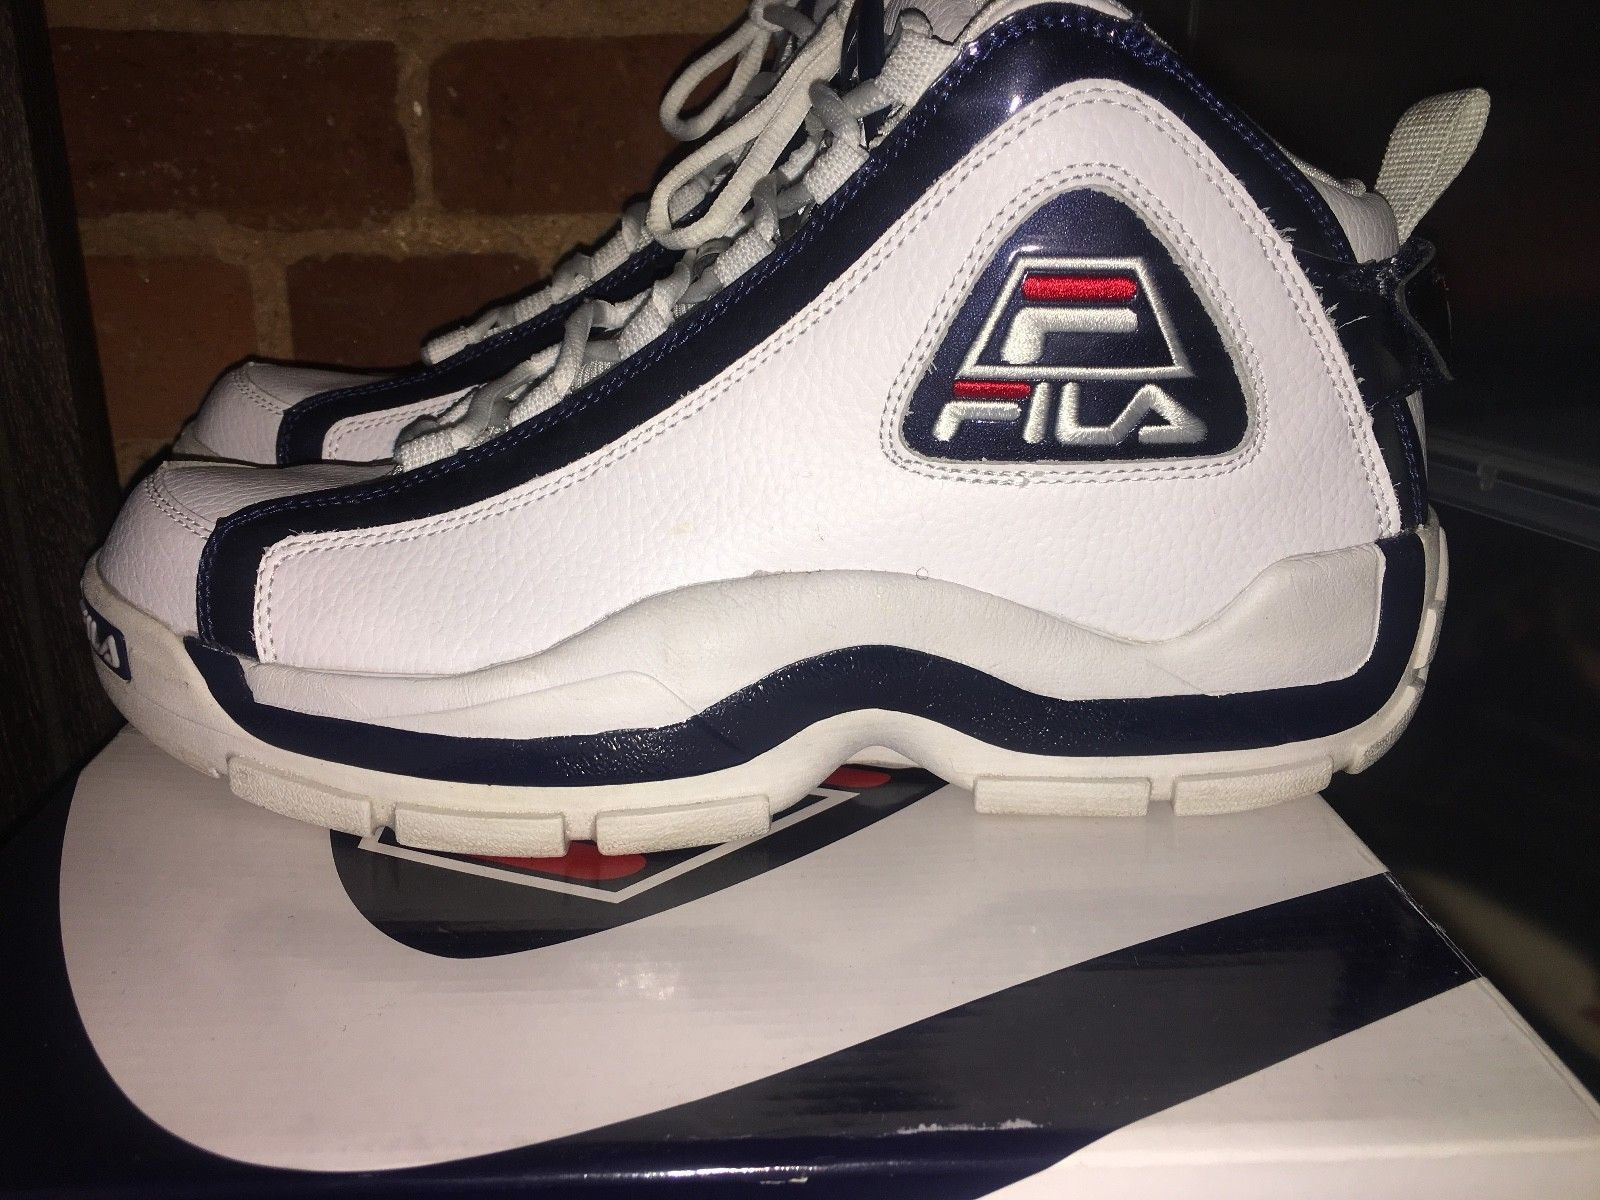 78667332667 Details about Men's FILA 96 OG GRANT HILL BASKETBALL SNEAKERS 2019 ...